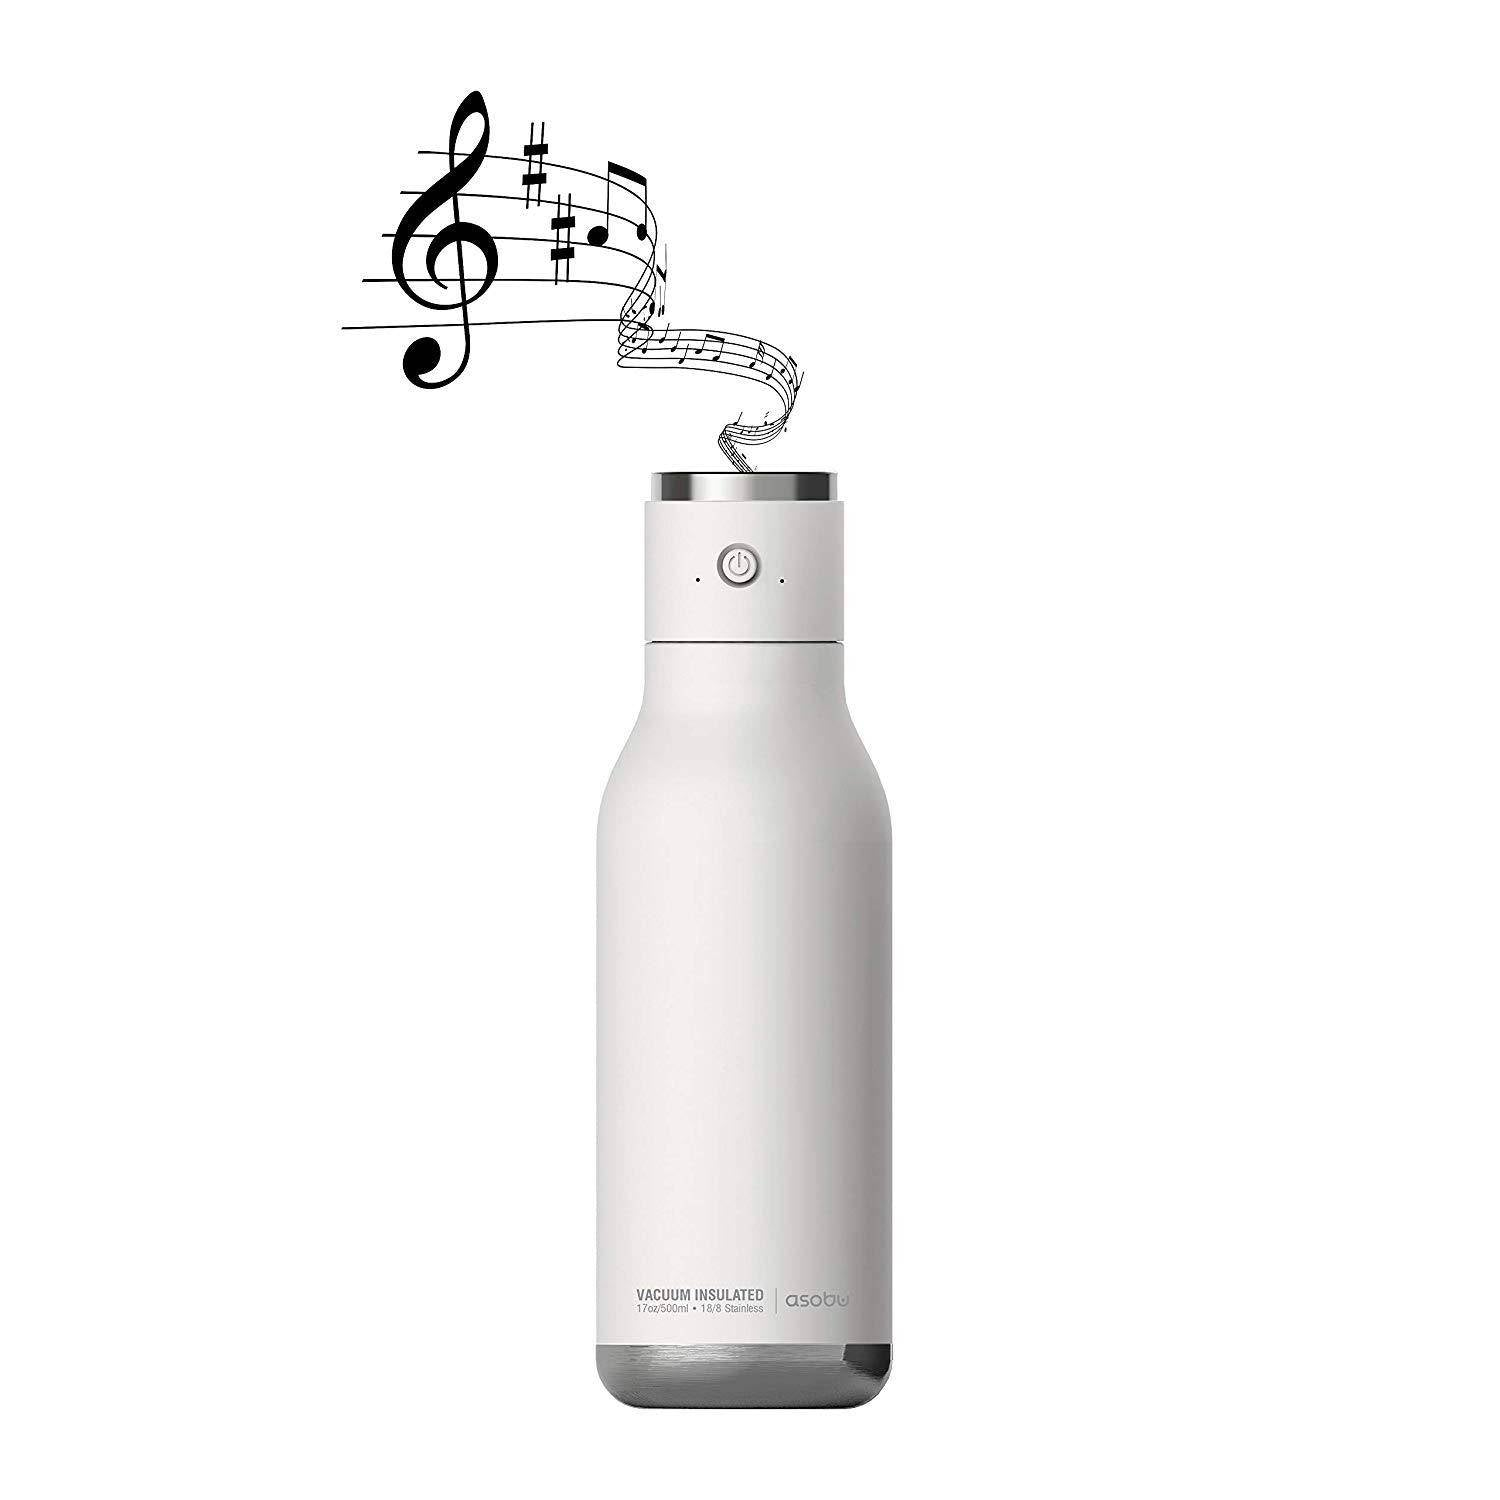 Asobu - Wireless Double Wall Insulated Stainless Steel Water Bottle with a Speaker Lid 17 Ounce - White - 2071MALL